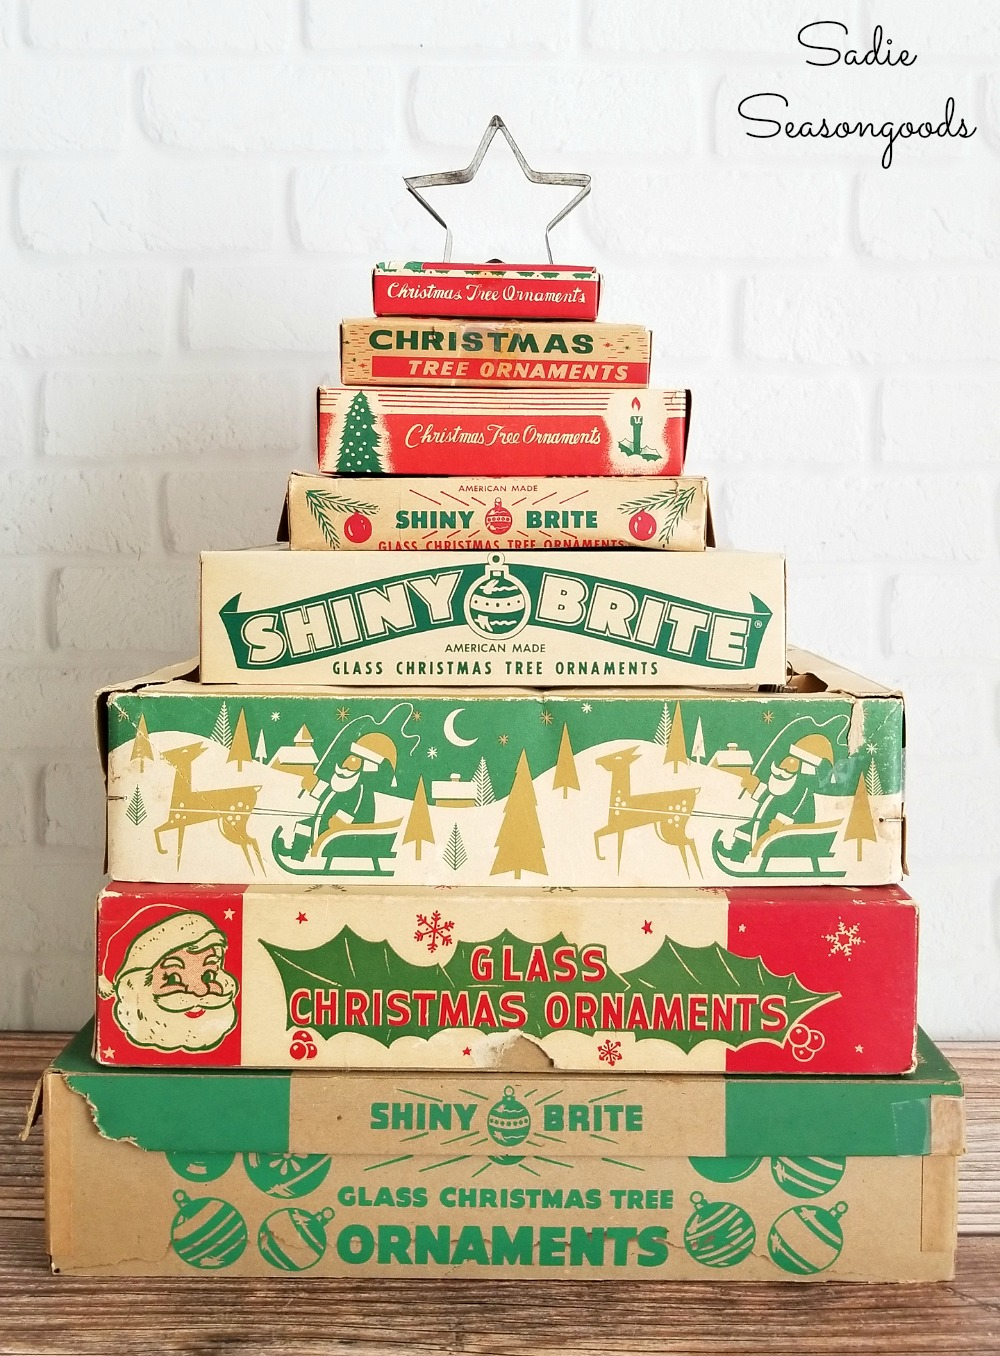 Stacked ornament boxes or vintage ornament boxes stacked together like a Christmas tree to display their vintage graphics for Christmas decor by Sadie Seasongoods / www.sadieseasongoods.com